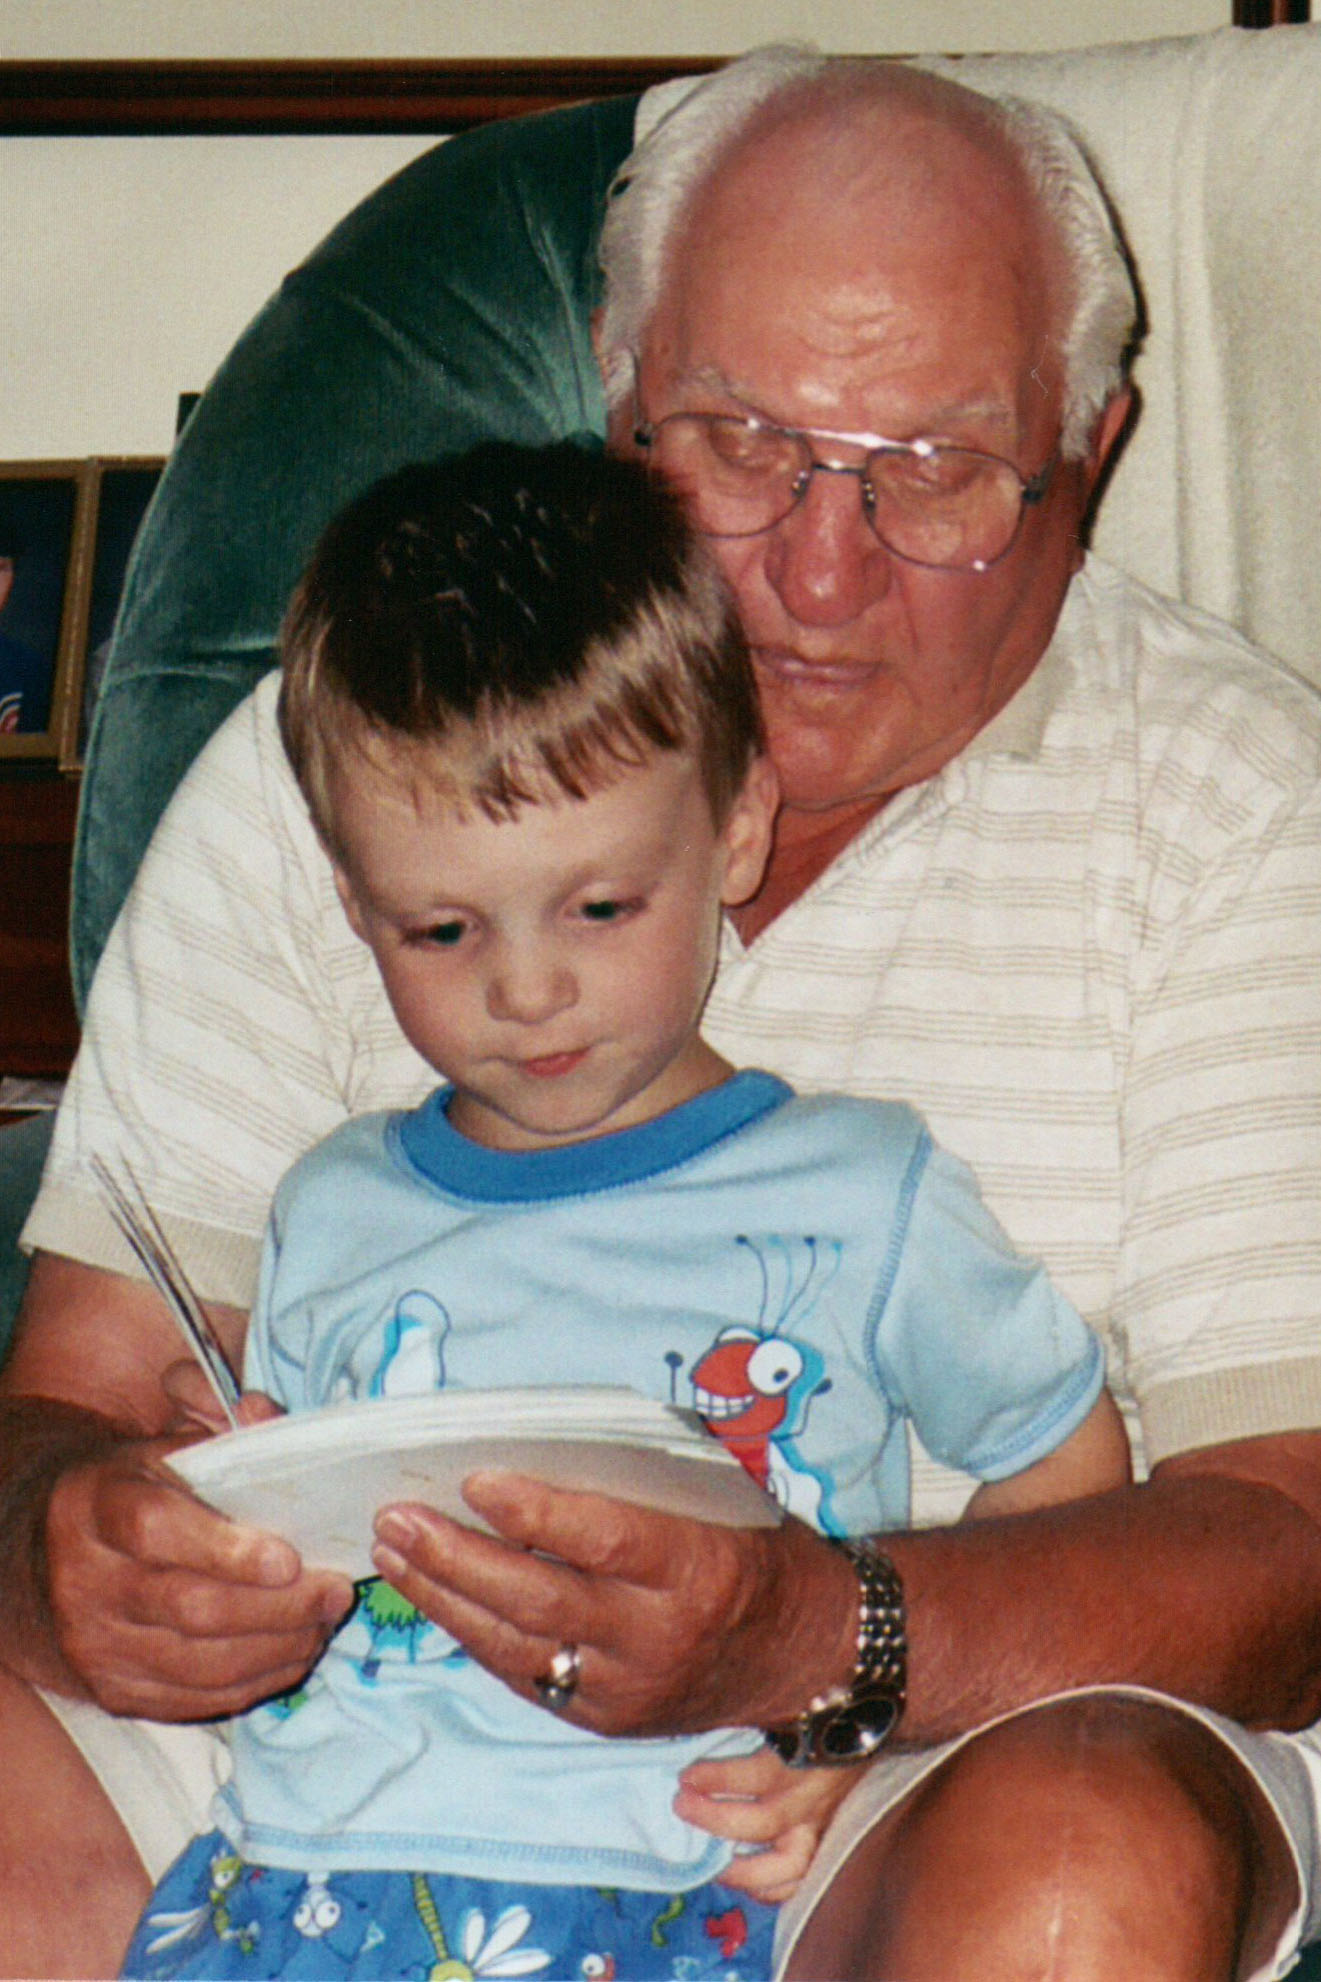 A photo of Pop-Pop-Pop looking at photos with his grandchild